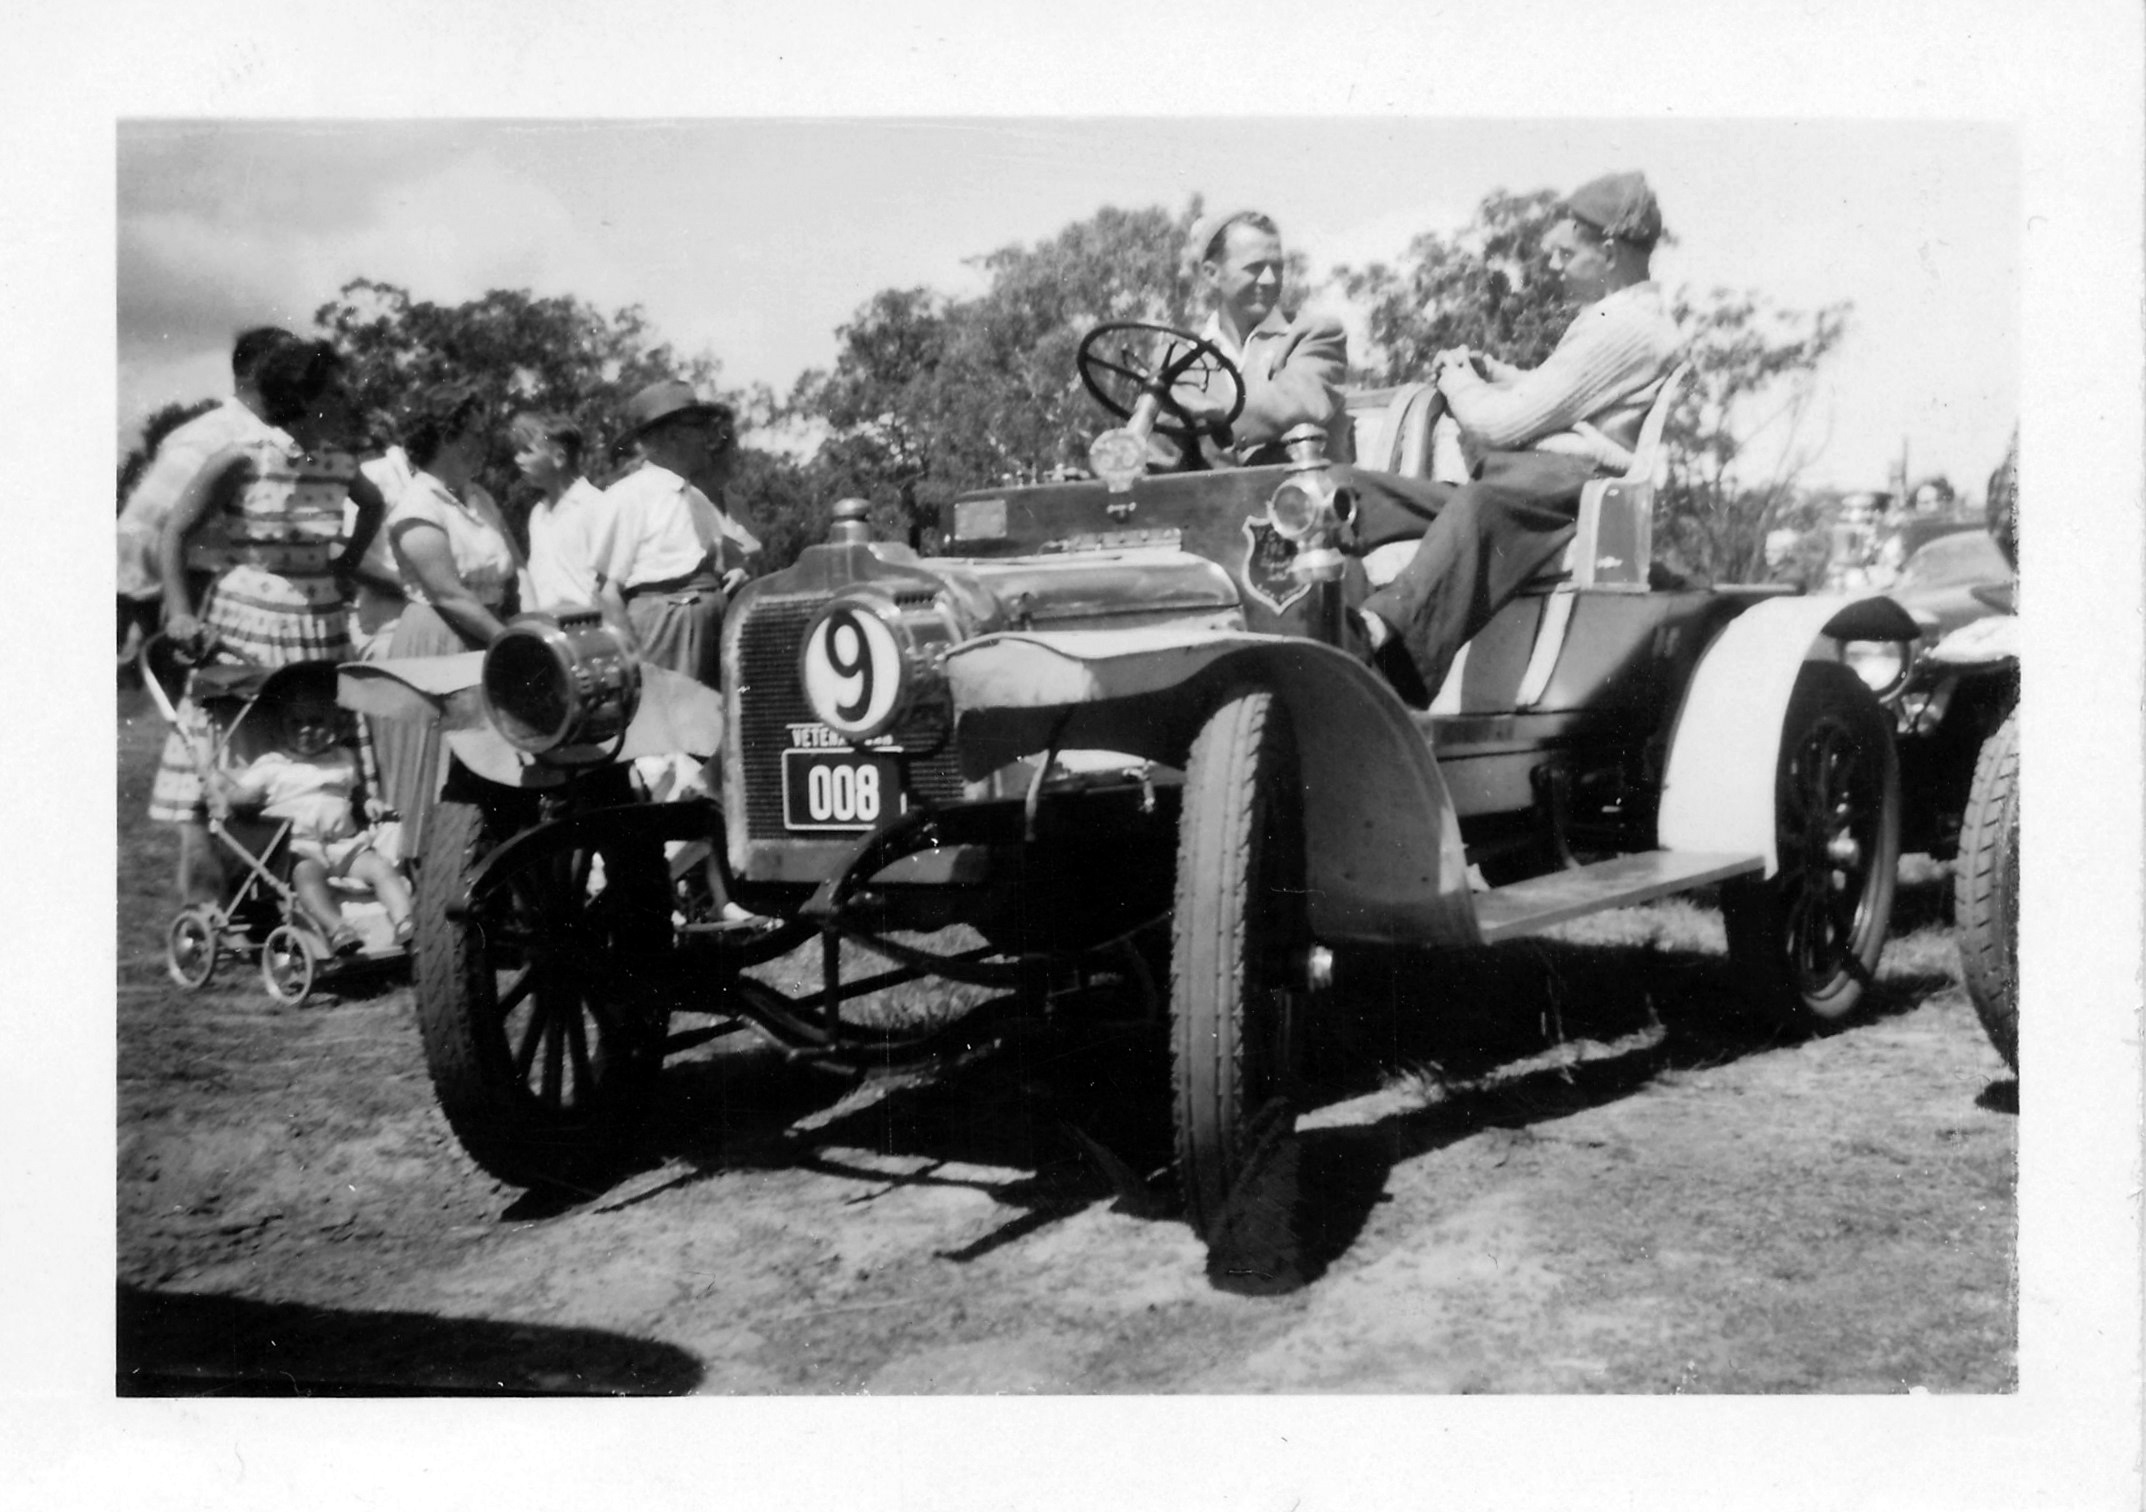 1908 Clement Talbot 2 cyl